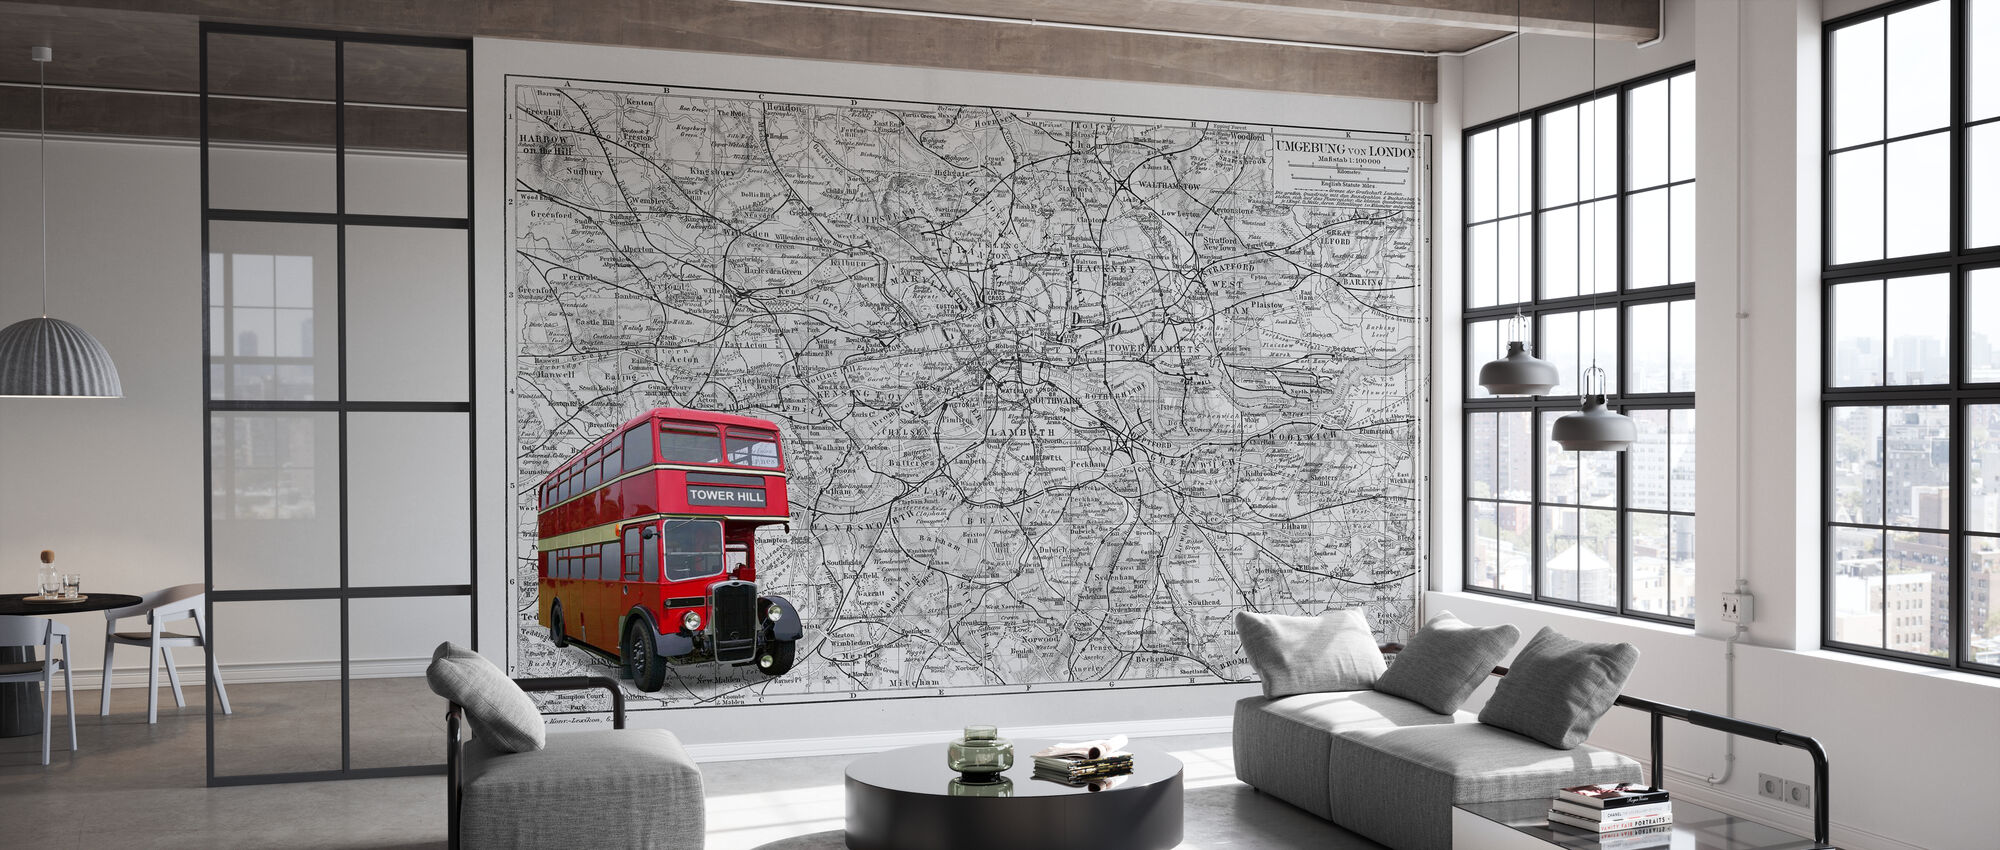 London Map with Bus - Colorsplash - Wallpaper - Office